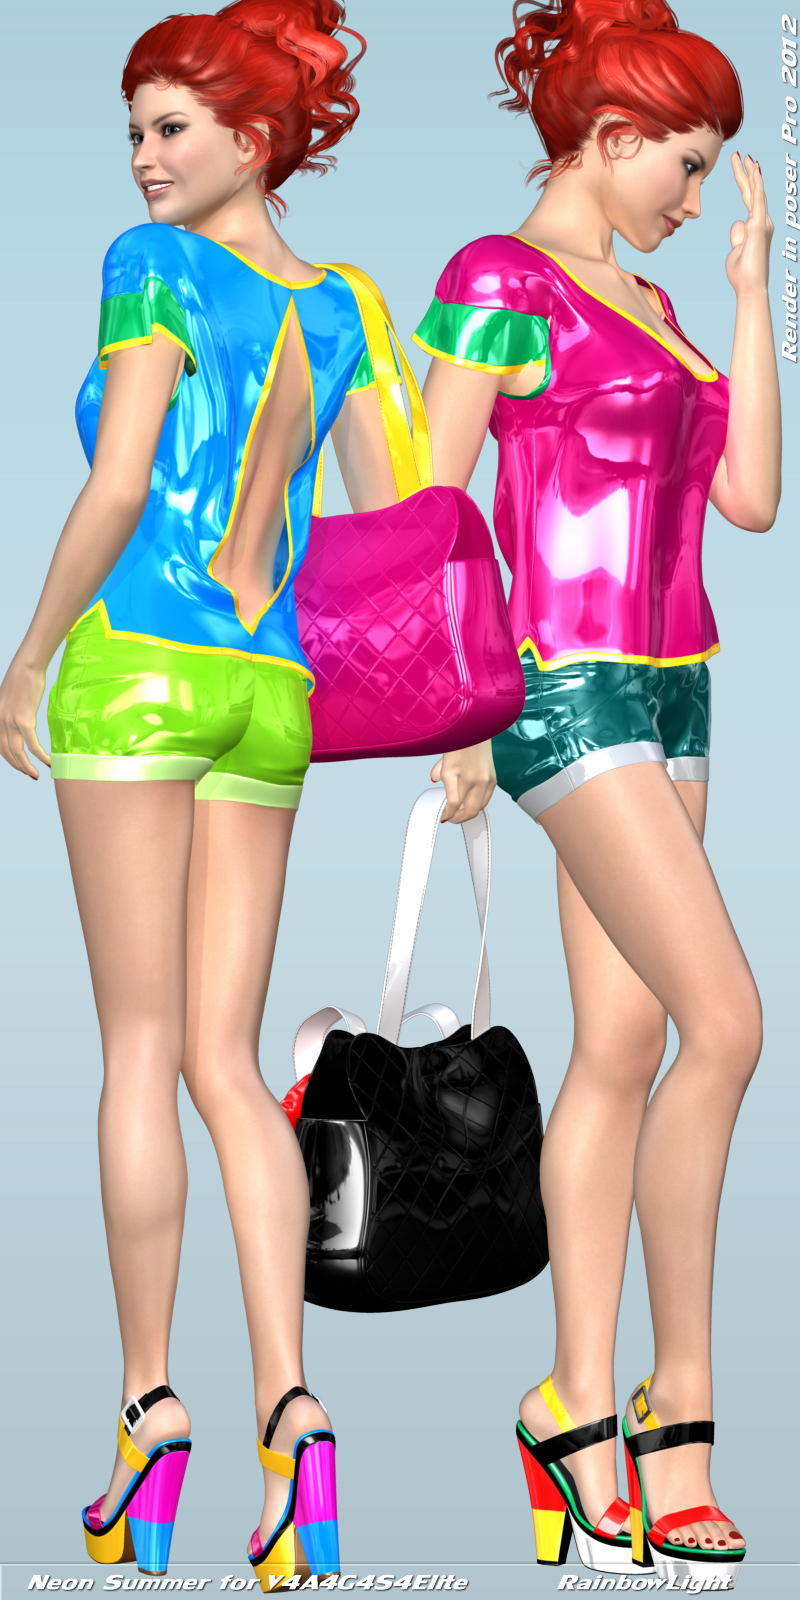 Neon Summer for V4A4G4S4Elite